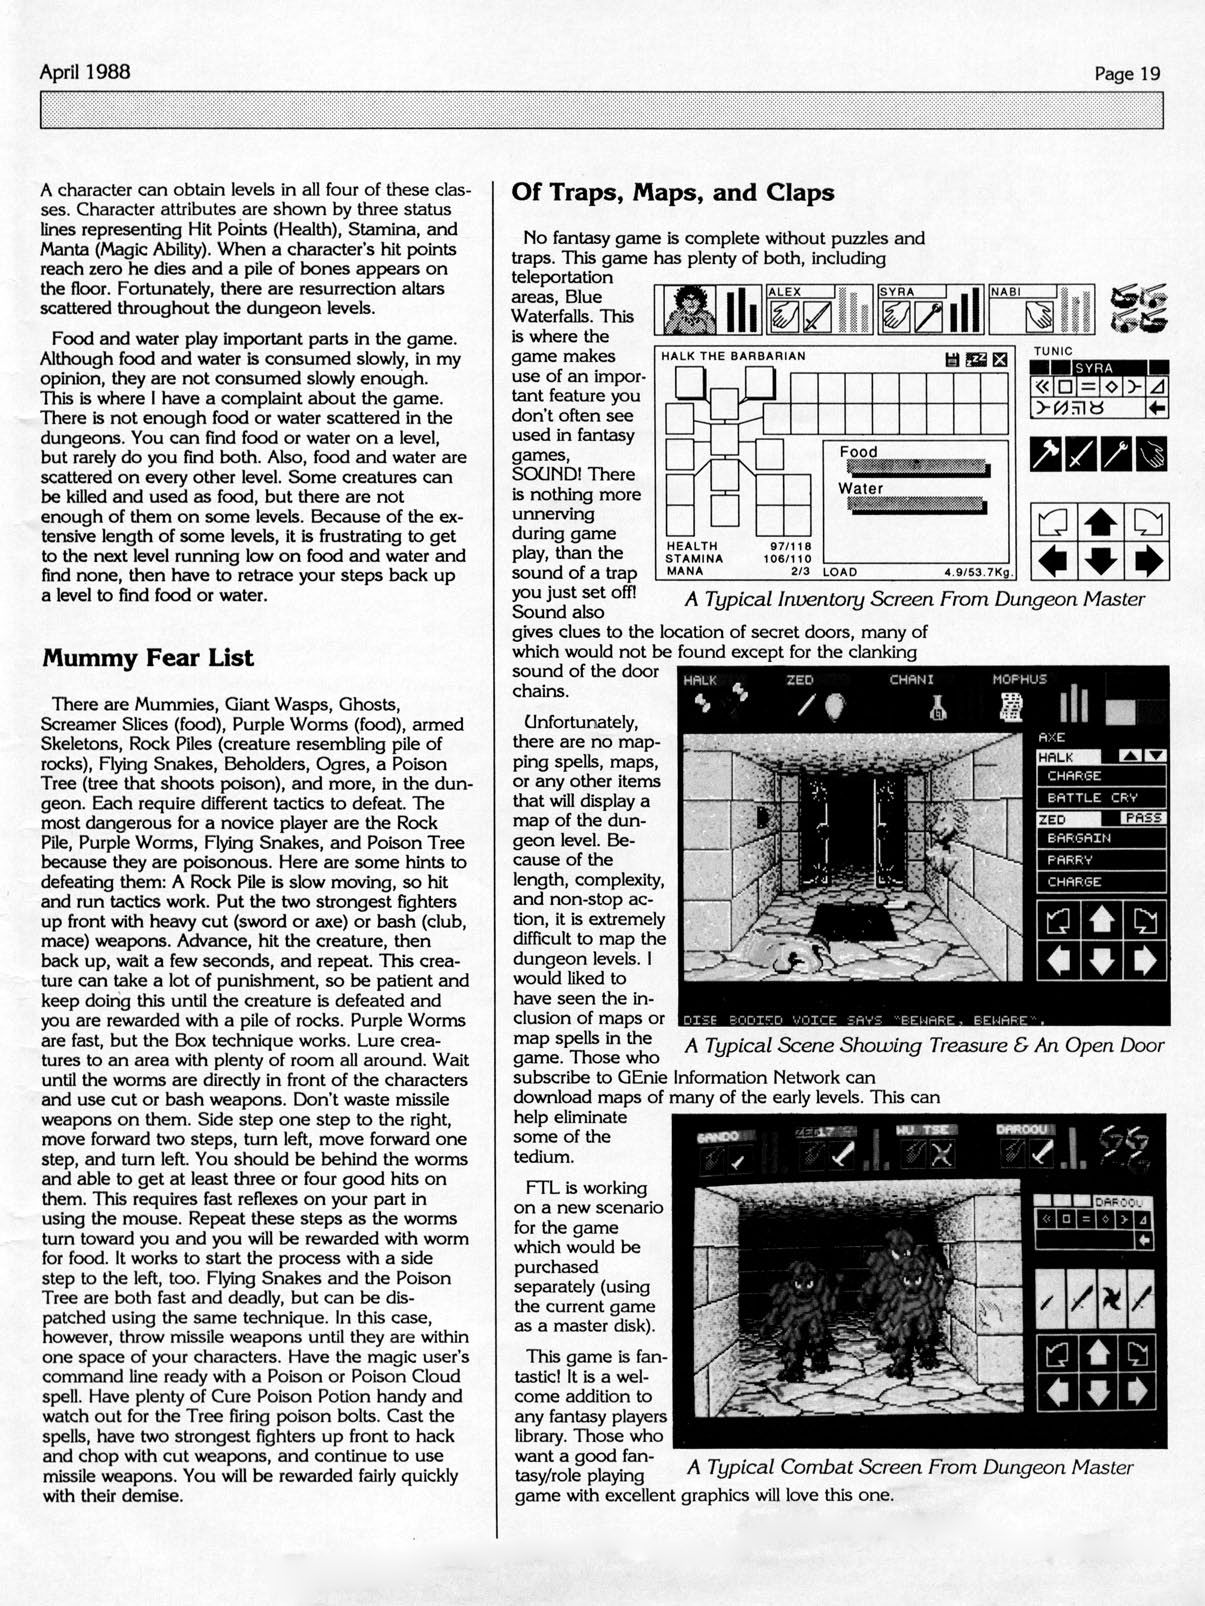 Dungeon Master for Atari ST Review published in American magazine 'Computer Gaming World', Issue #46, April 1988, Page 19